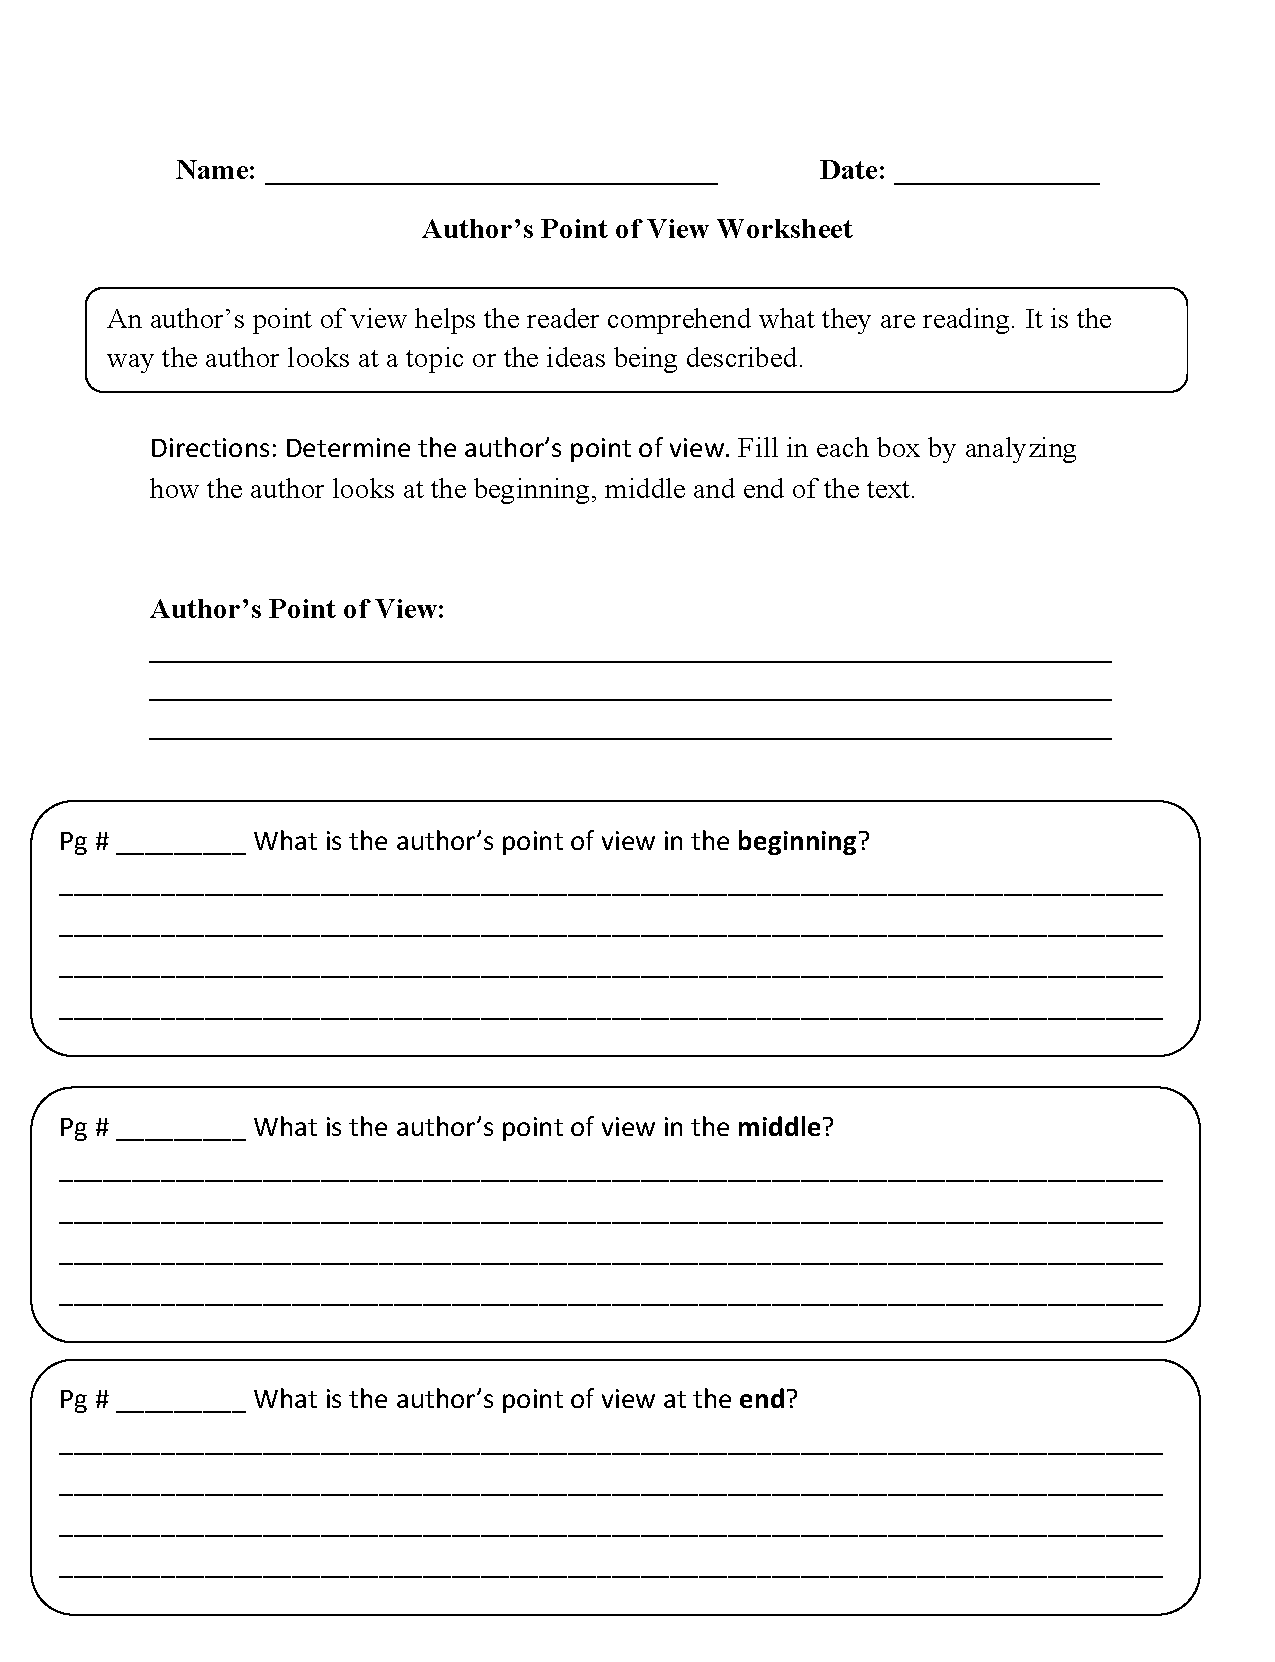 Weirdmailus  Pretty Englishlinxcom  Point Of View Worksheets With Fair Point Of View Worksheets With Beauteous Grade  Subtraction Worksheets Also Phonic Worksheets For St Grade In Addition Pictogram Worksheet And Daily Life Skills Worksheets As Well As Chinese New Year Printable Worksheets Additionally Decimal Place Worksheets From Englishlinxcom With Weirdmailus  Fair Englishlinxcom  Point Of View Worksheets With Beauteous Point Of View Worksheets And Pretty Grade  Subtraction Worksheets Also Phonic Worksheets For St Grade In Addition Pictogram Worksheet From Englishlinxcom